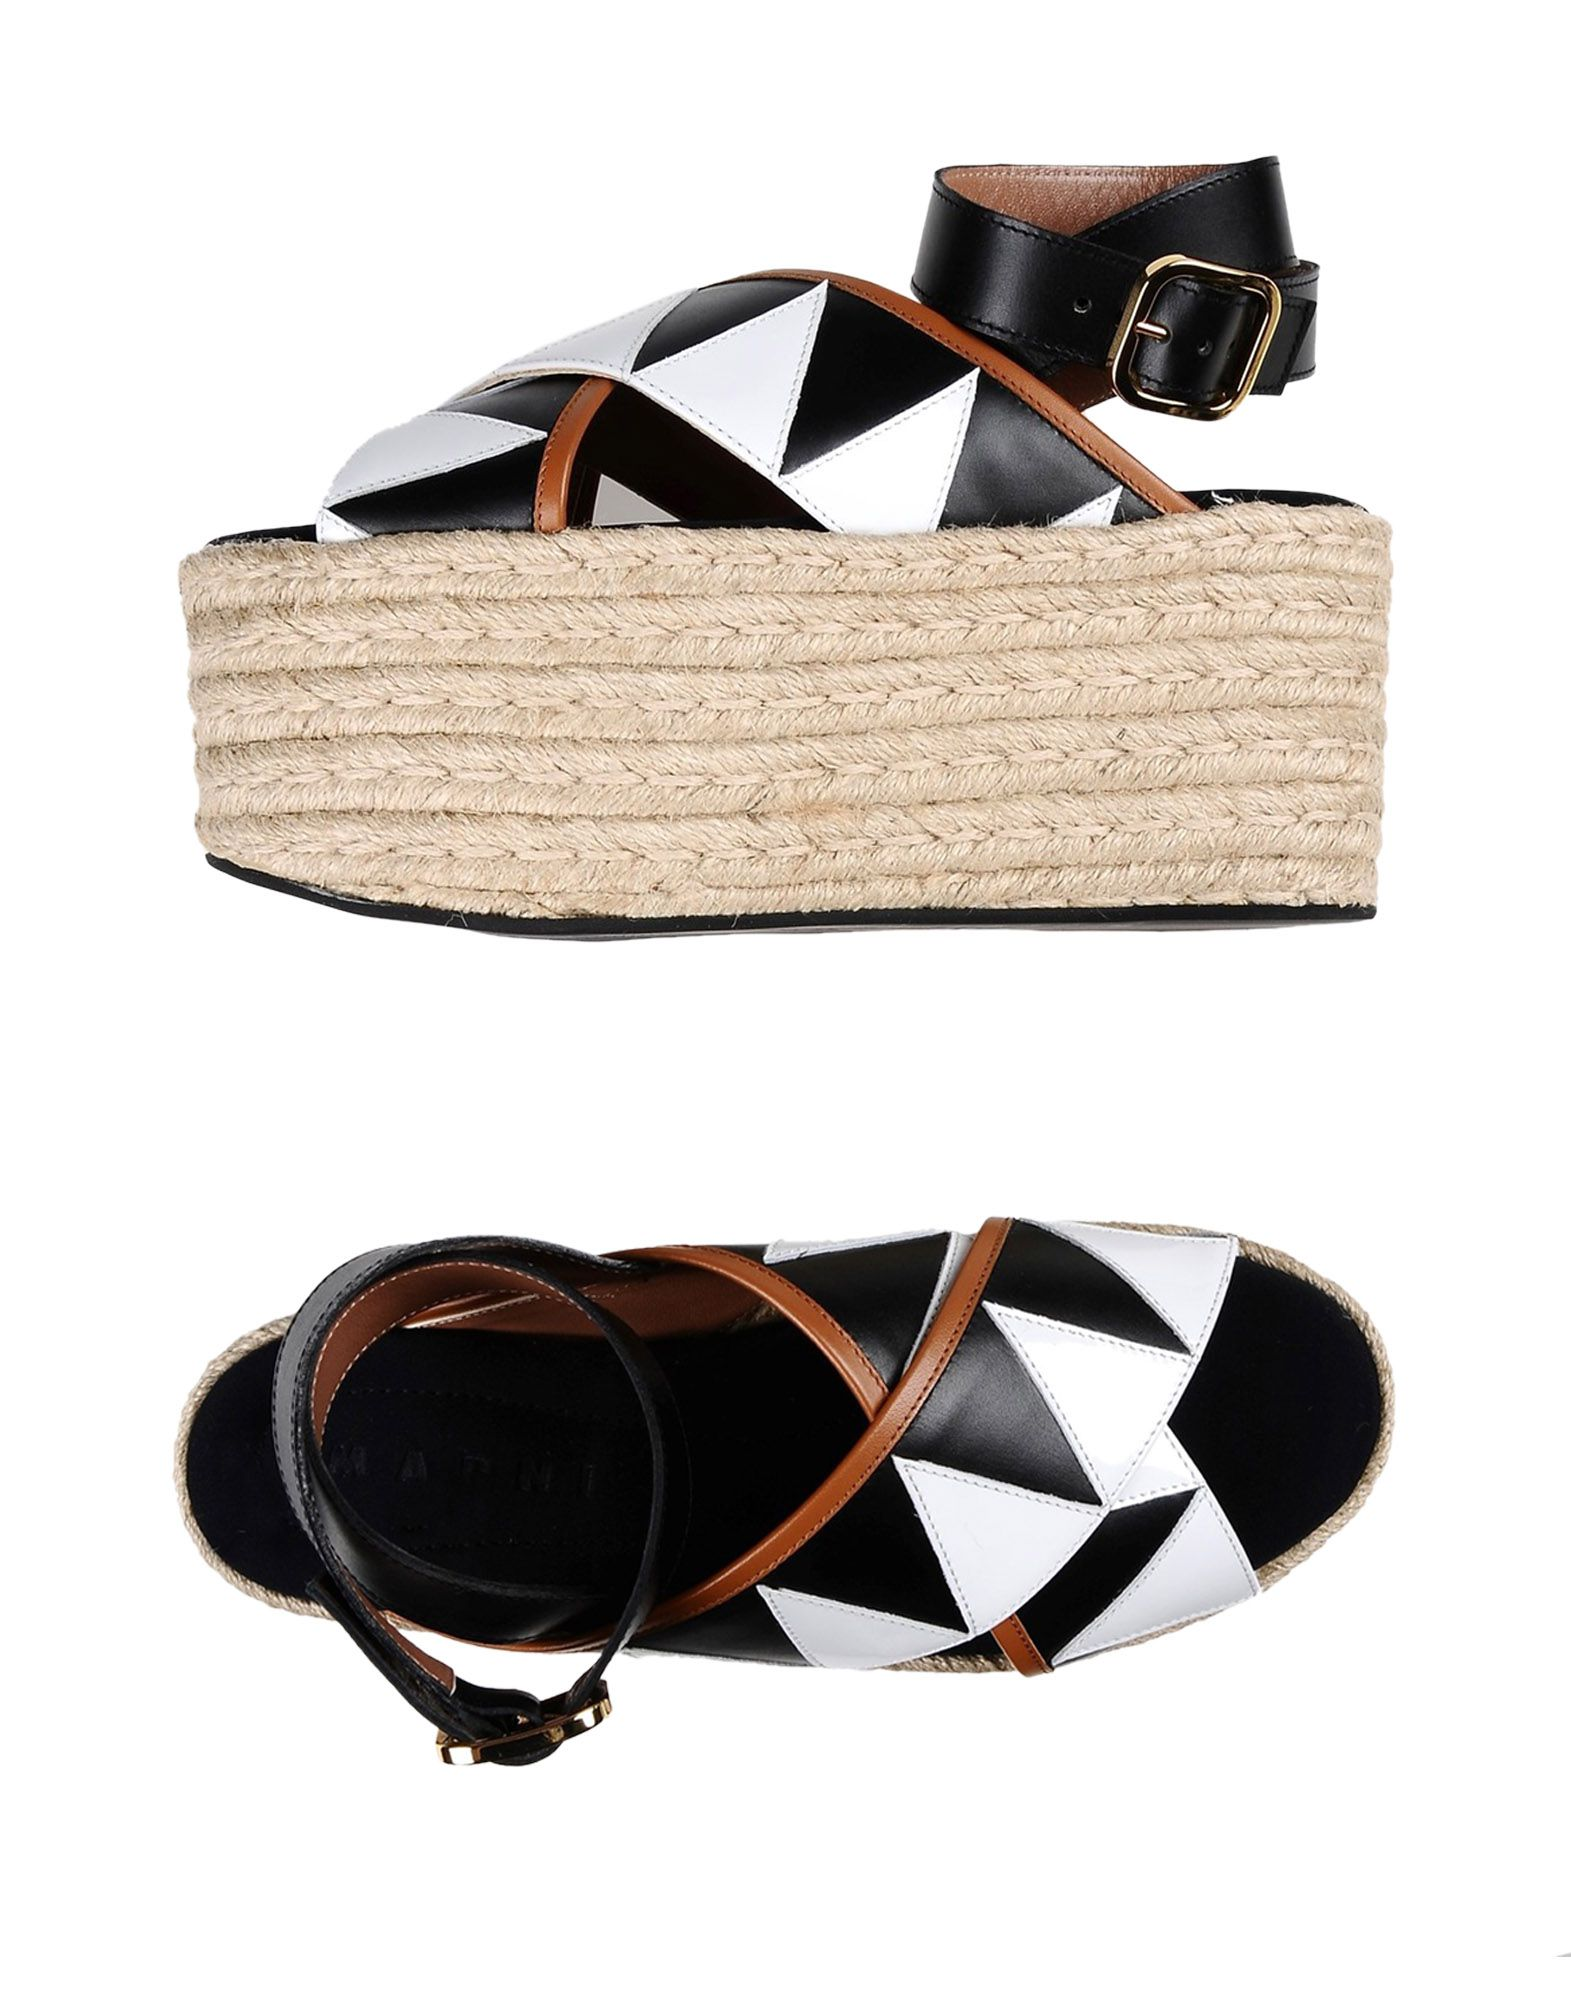 MARNI Espadrilles. no appliqués, multicolor pattern, buckle, round toeline, wedge heel, rope wedge, leather lining, rubber sole, contains non-textile parts of animal origin. Soft Leather